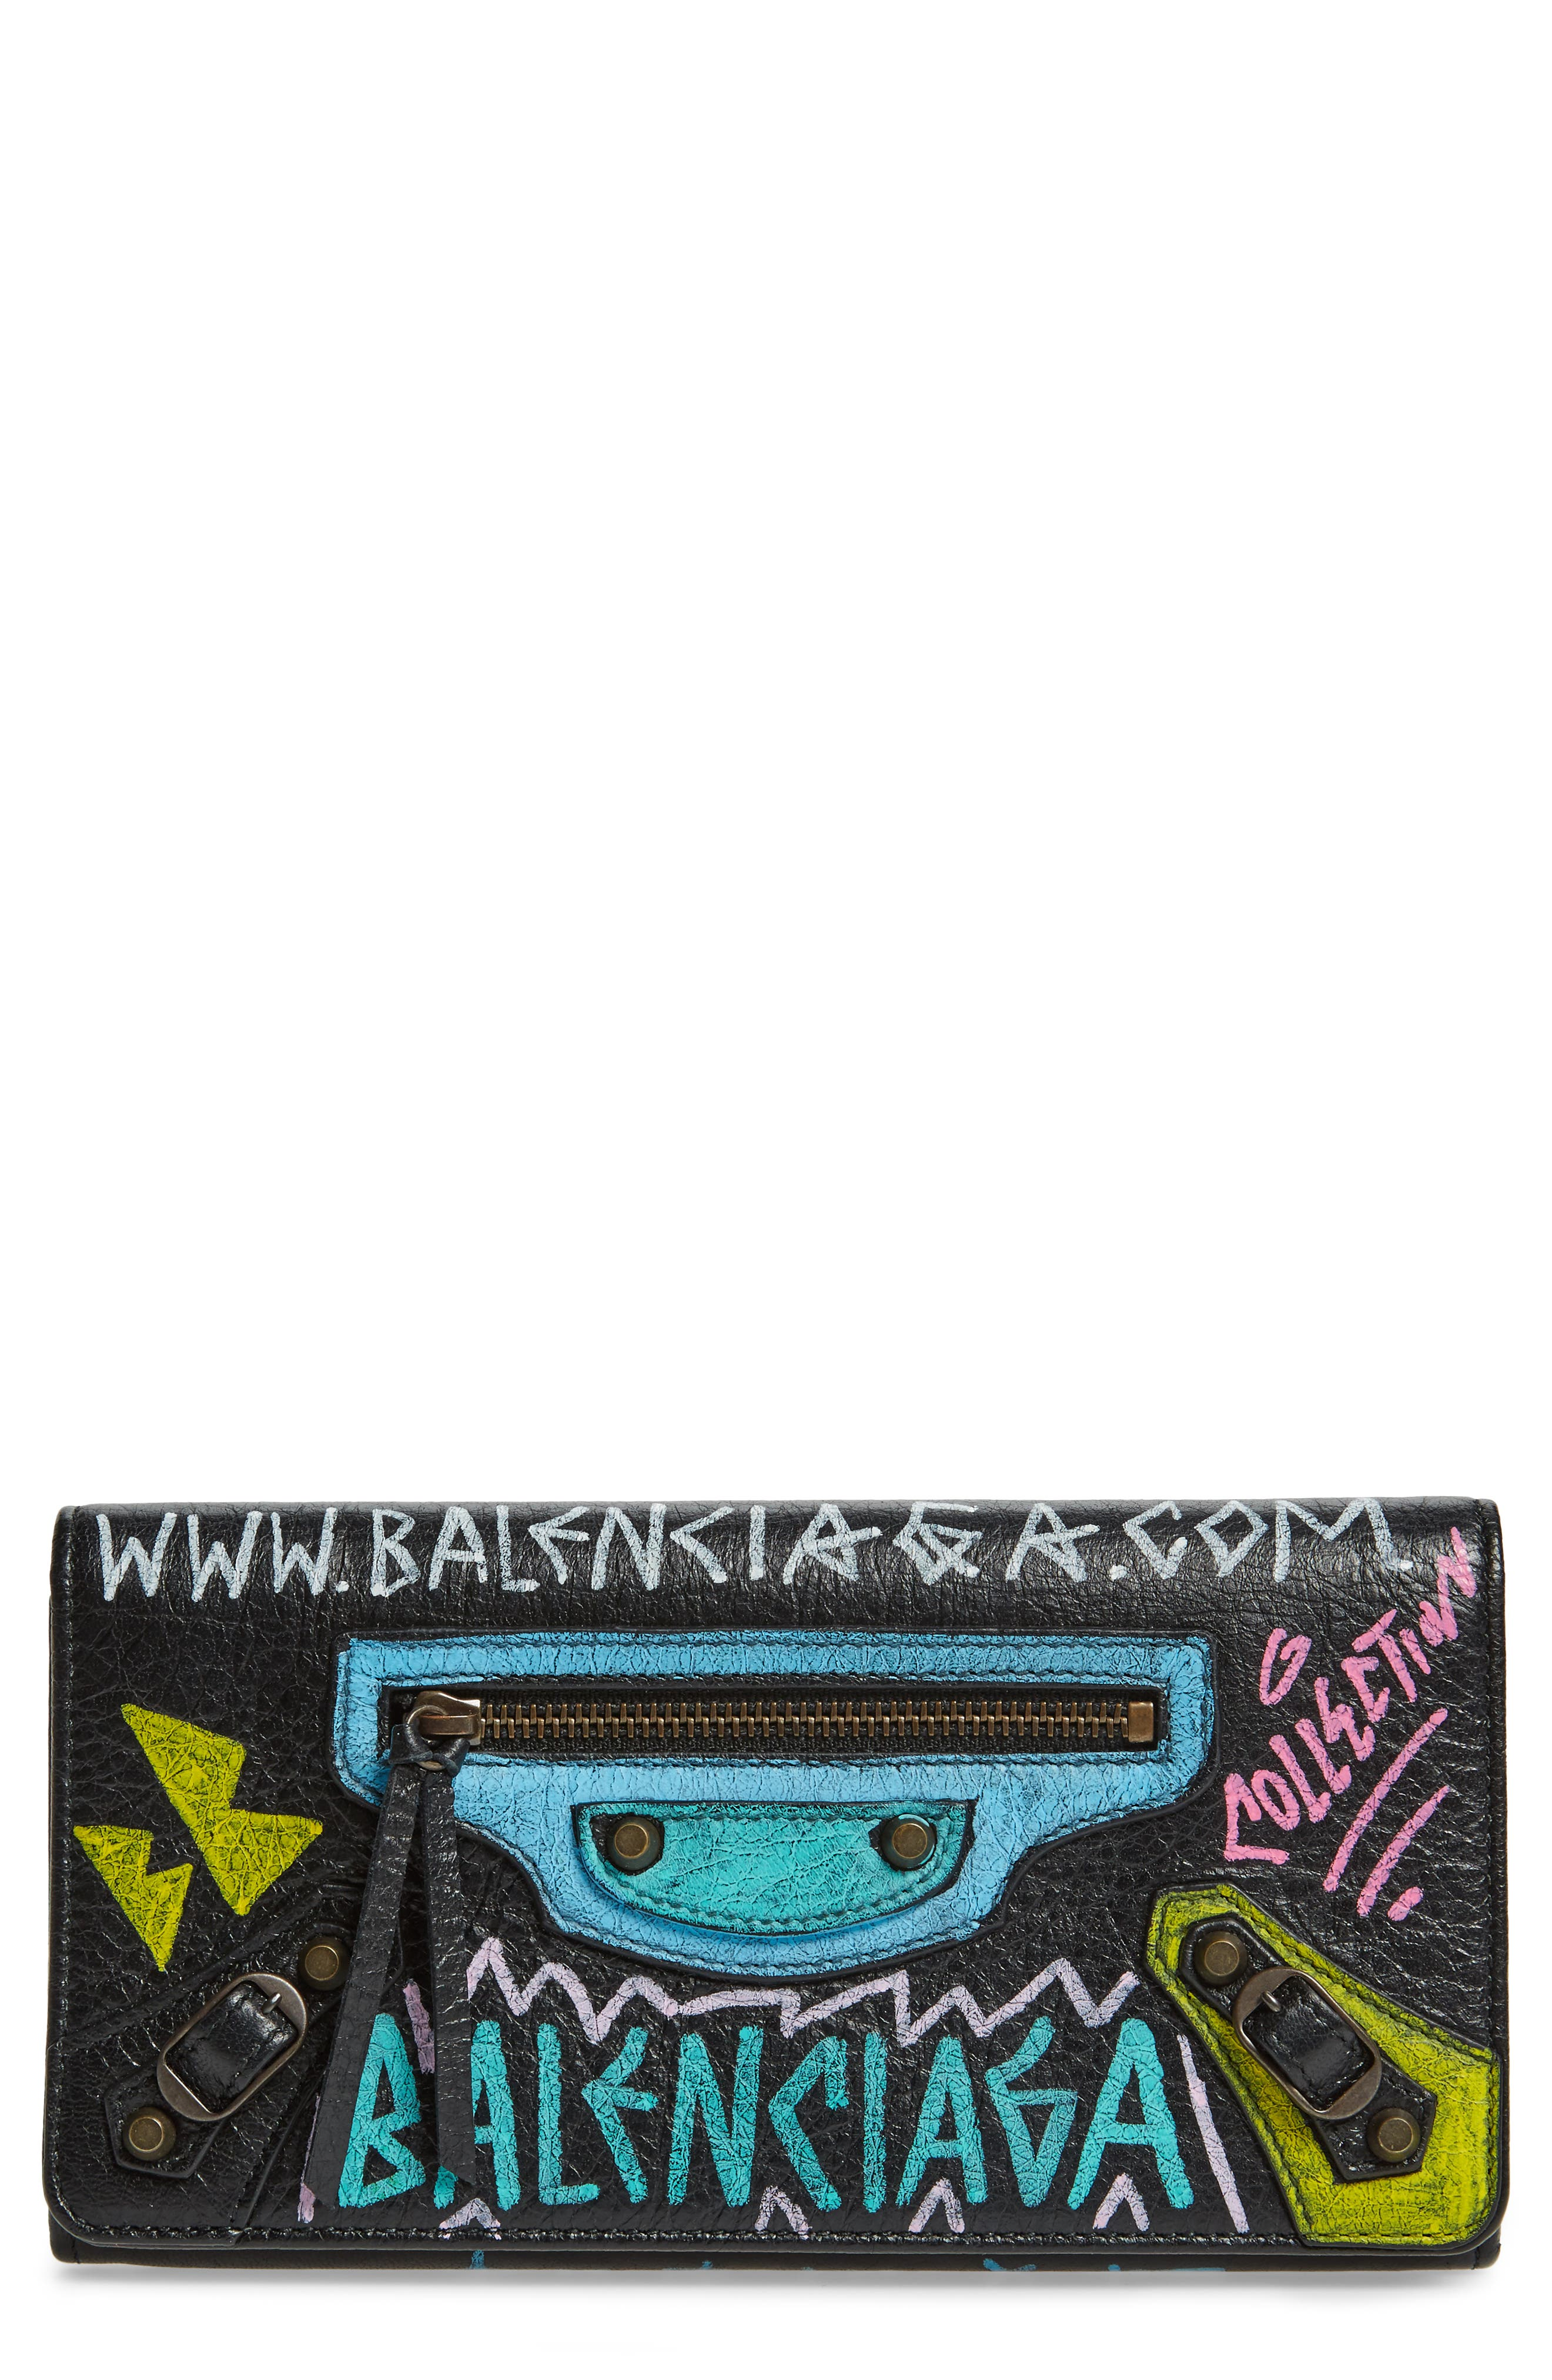 Classic Graffiti Leather Wallet,                         Main,                         color, 006